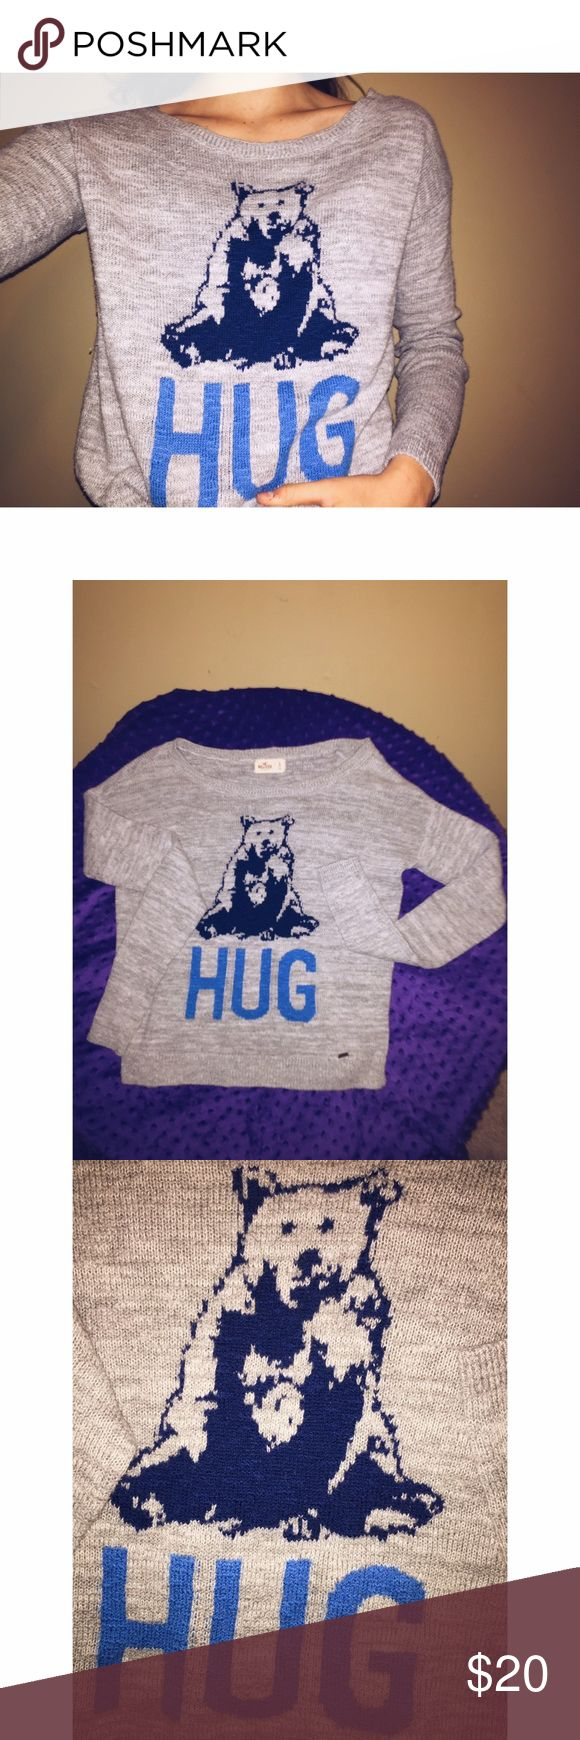 "Hollister sweater ""Bear Hug"" Good condition has a bear on the front with the word hug meaning ""bear hug"" from hollister size small Hollister Sweaters"